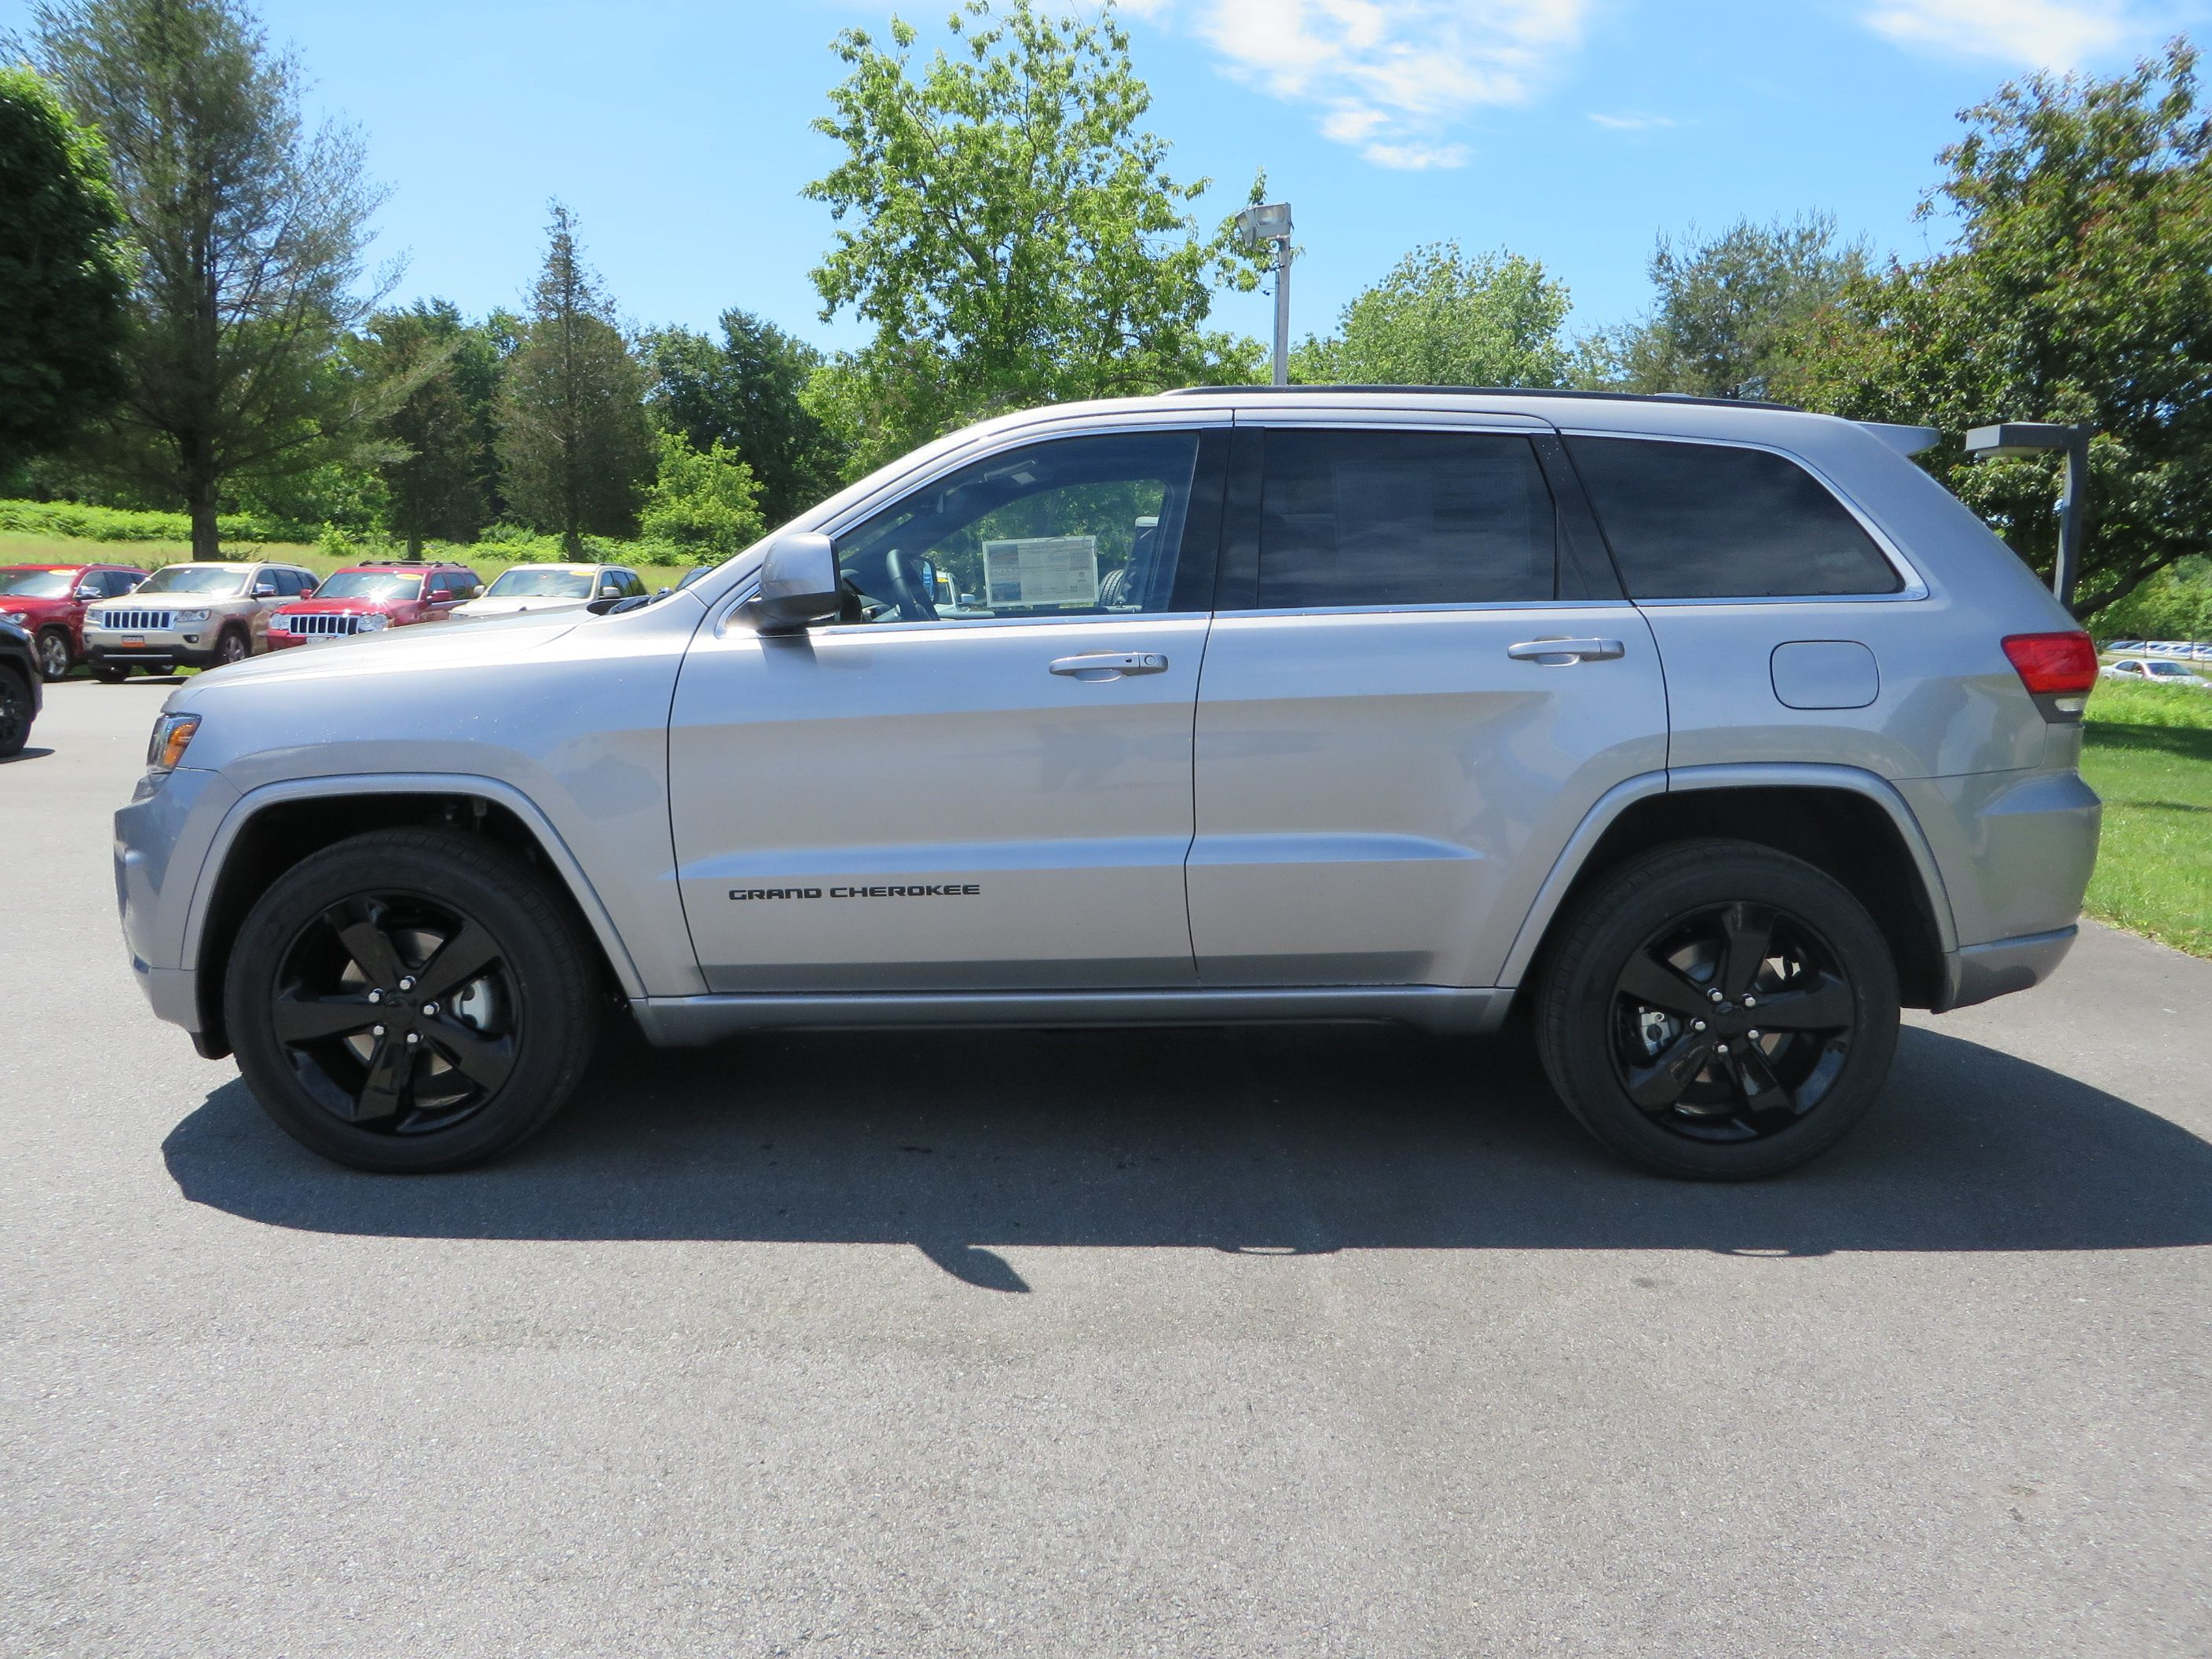 cherokee in sport pre altitude grand inventory utility owned jeep